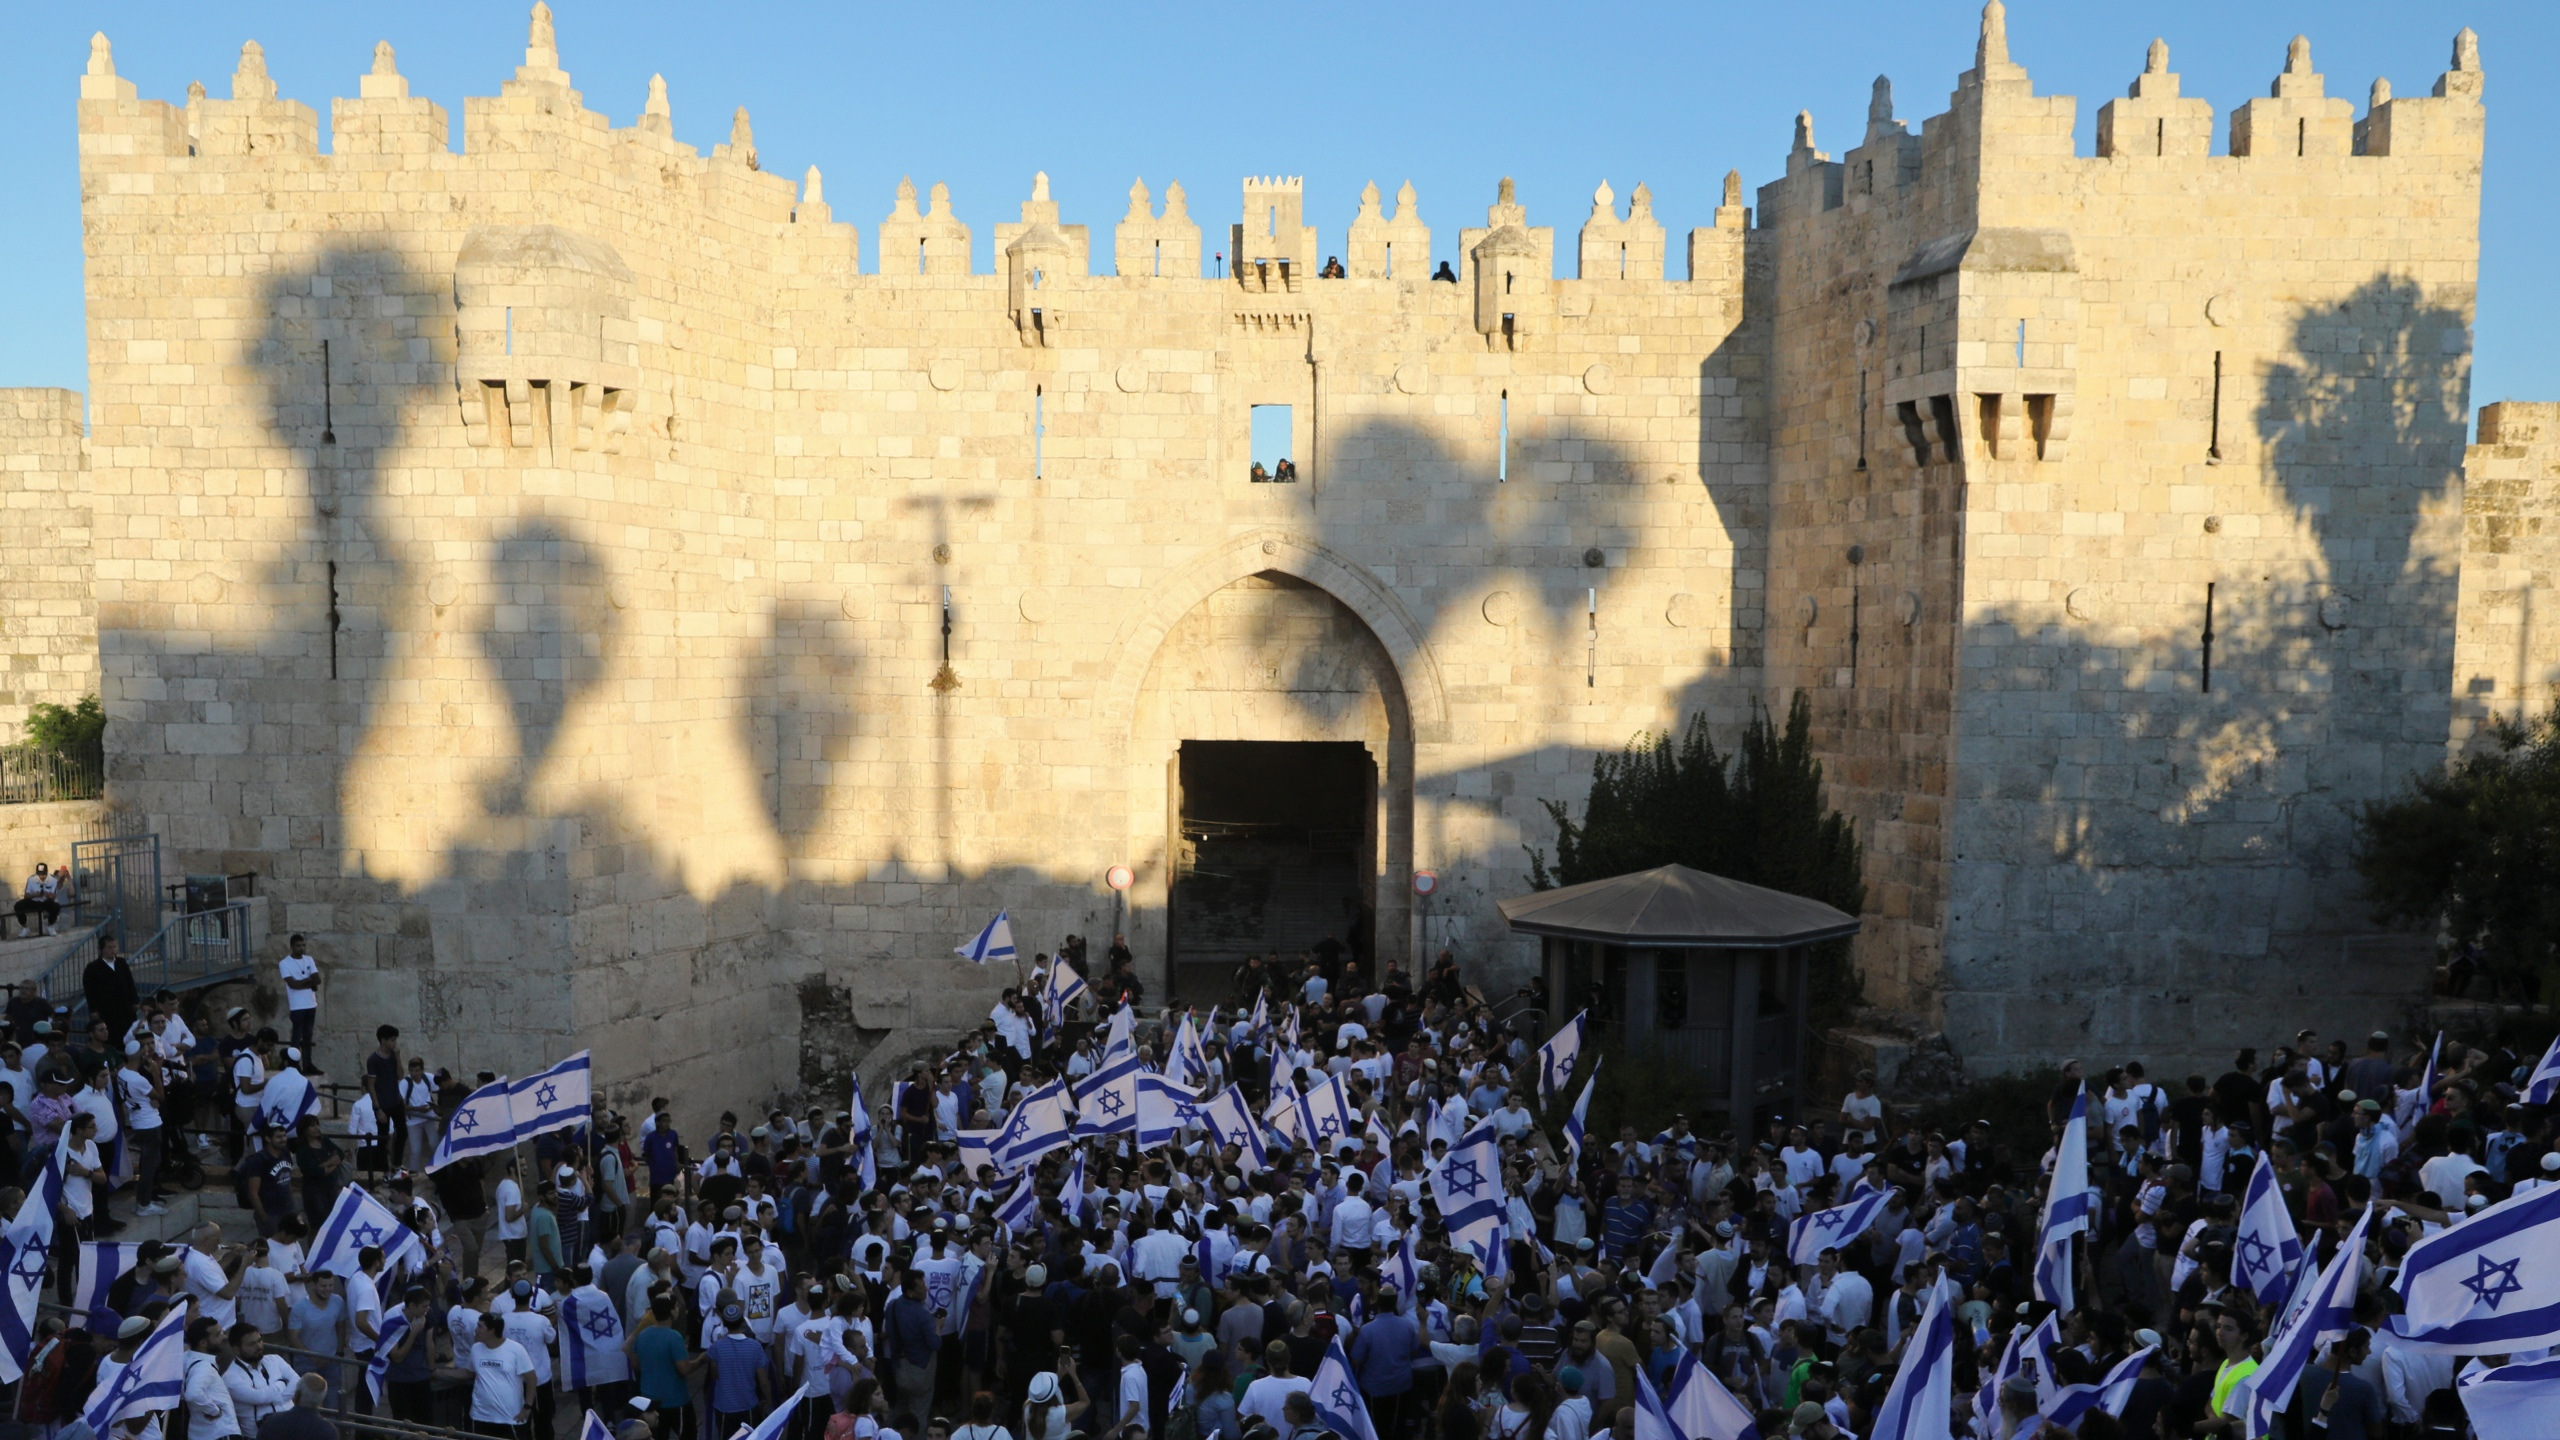 """Jewish ultranationalists wave Israeli flags during the """"Flags March,"""" next to Damascus gate, outside Jerusalem's Old City on June 15, 2021. (AP Photo/Mahmoud Illean)"""